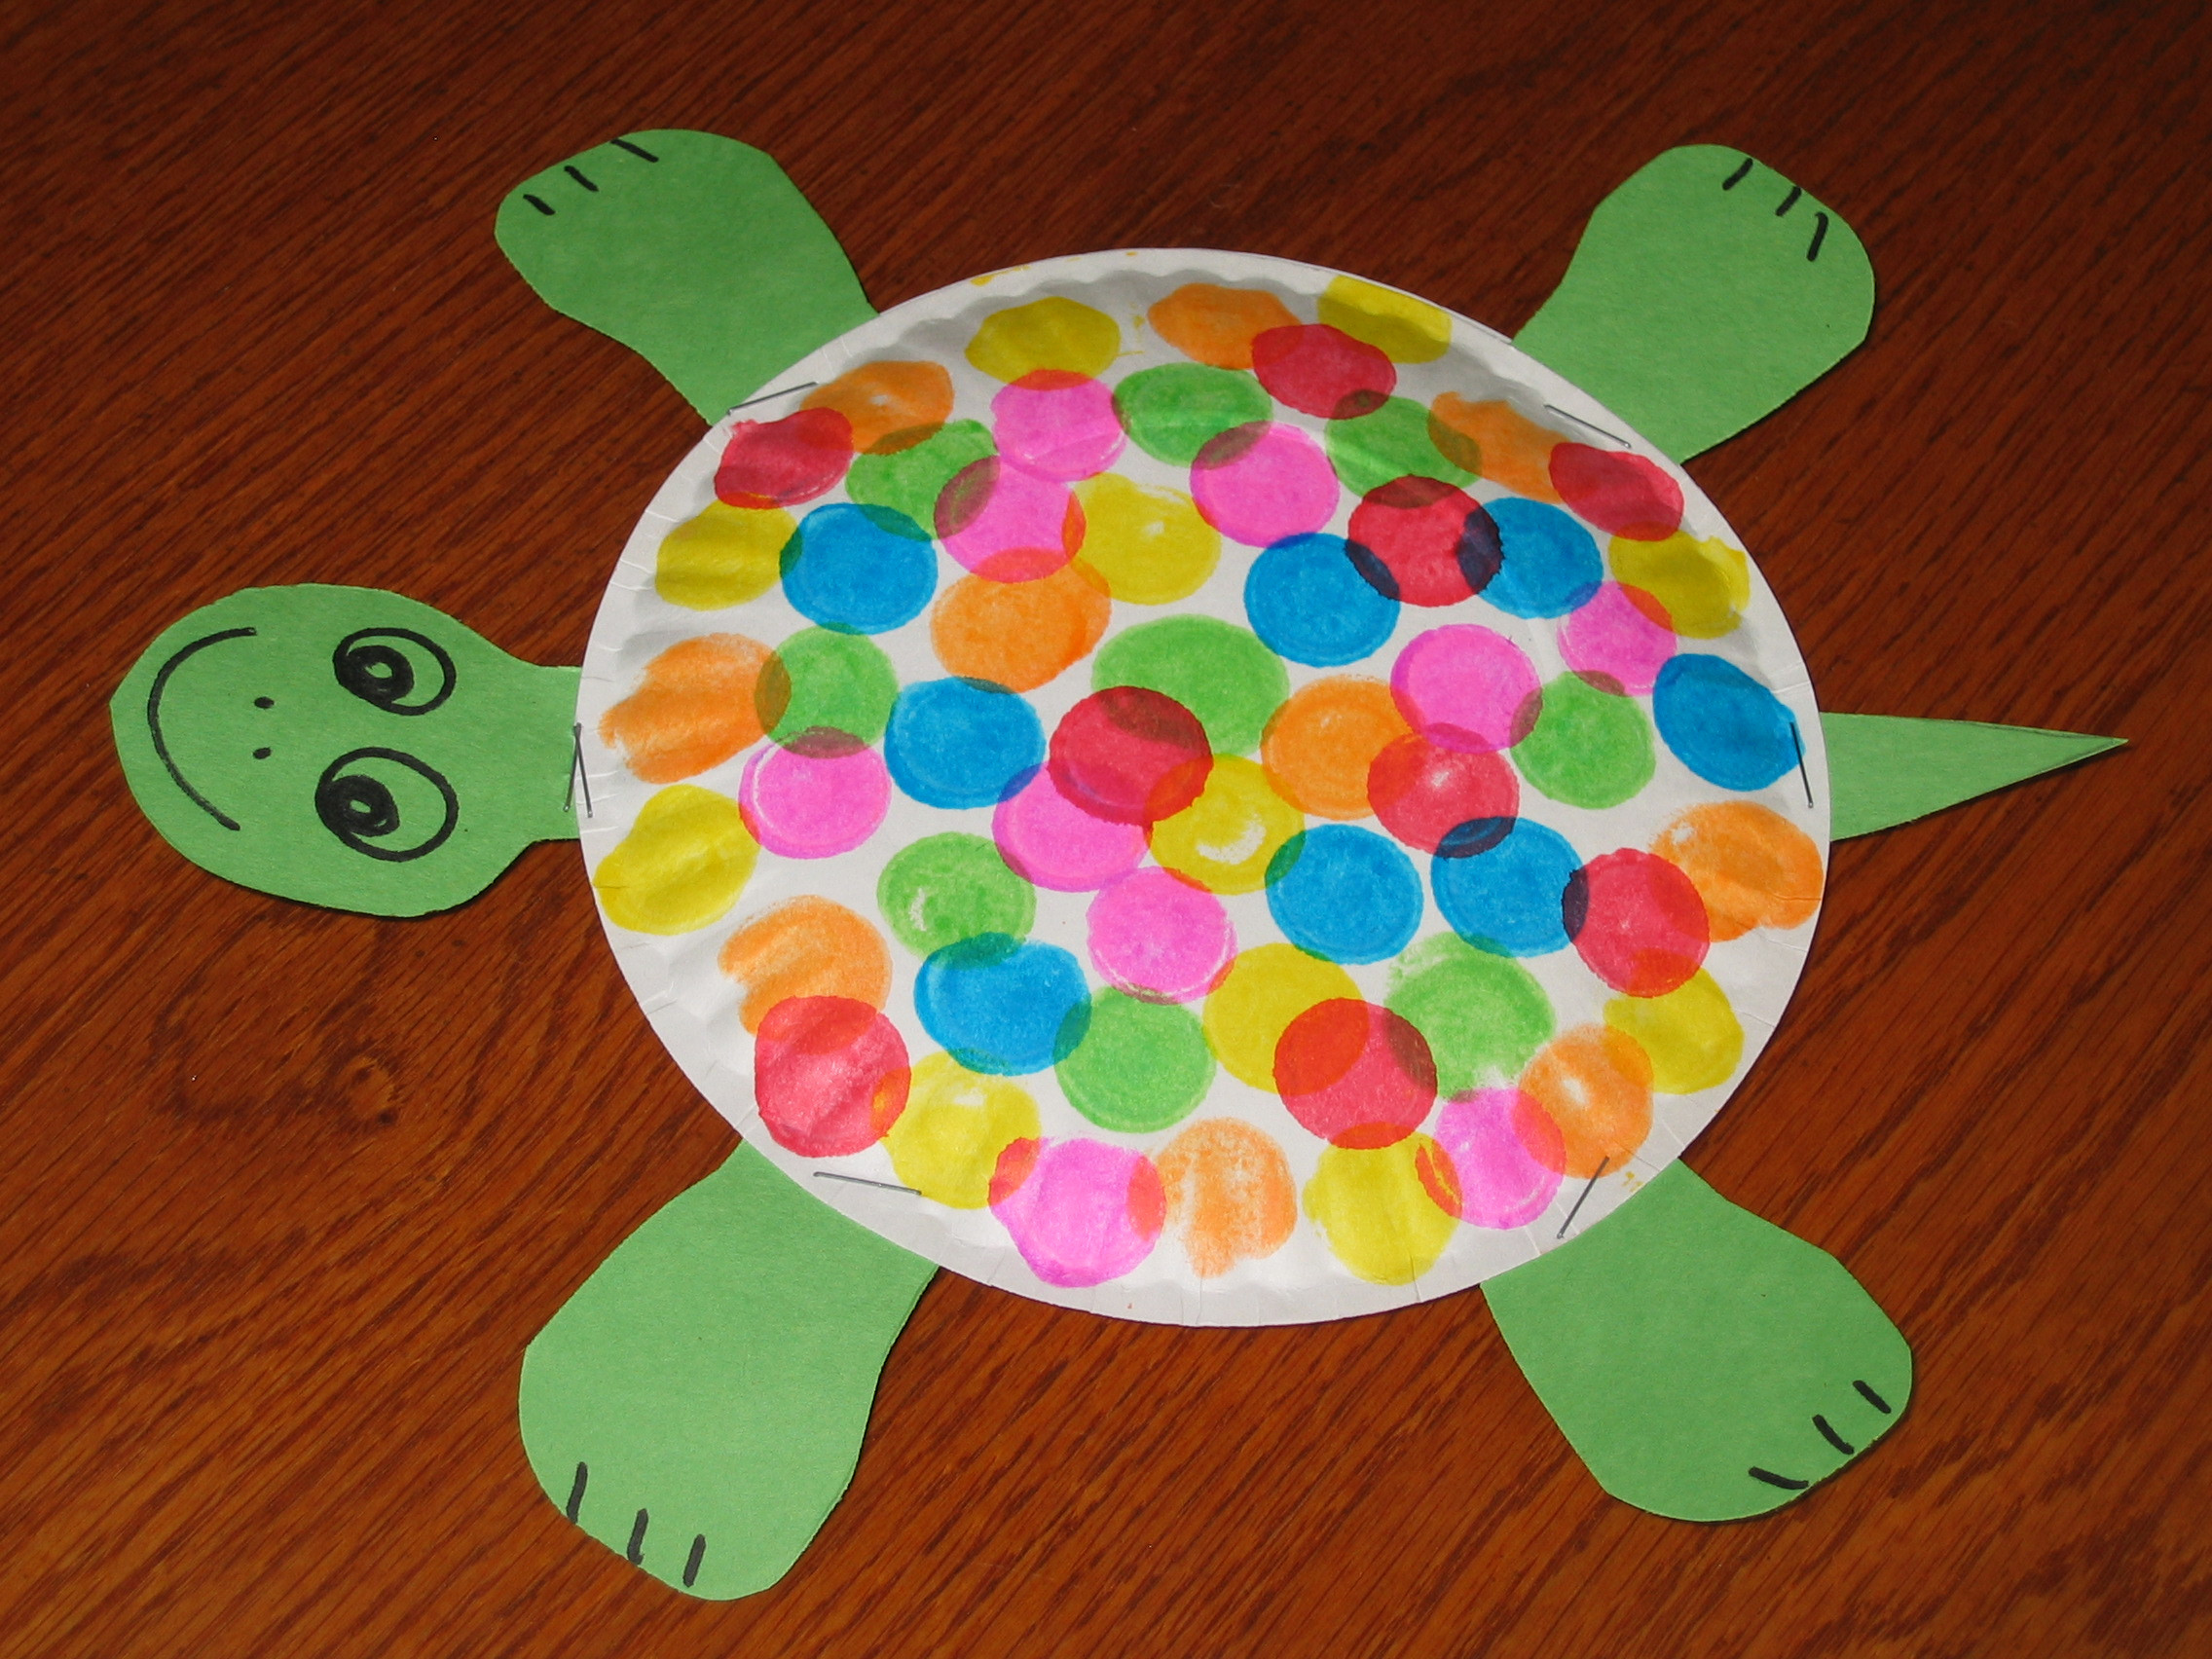 Best ideas about Preschool Art Projects . Save or Pin 40 Fun and Fantastic Paper Plate Crafts Now.